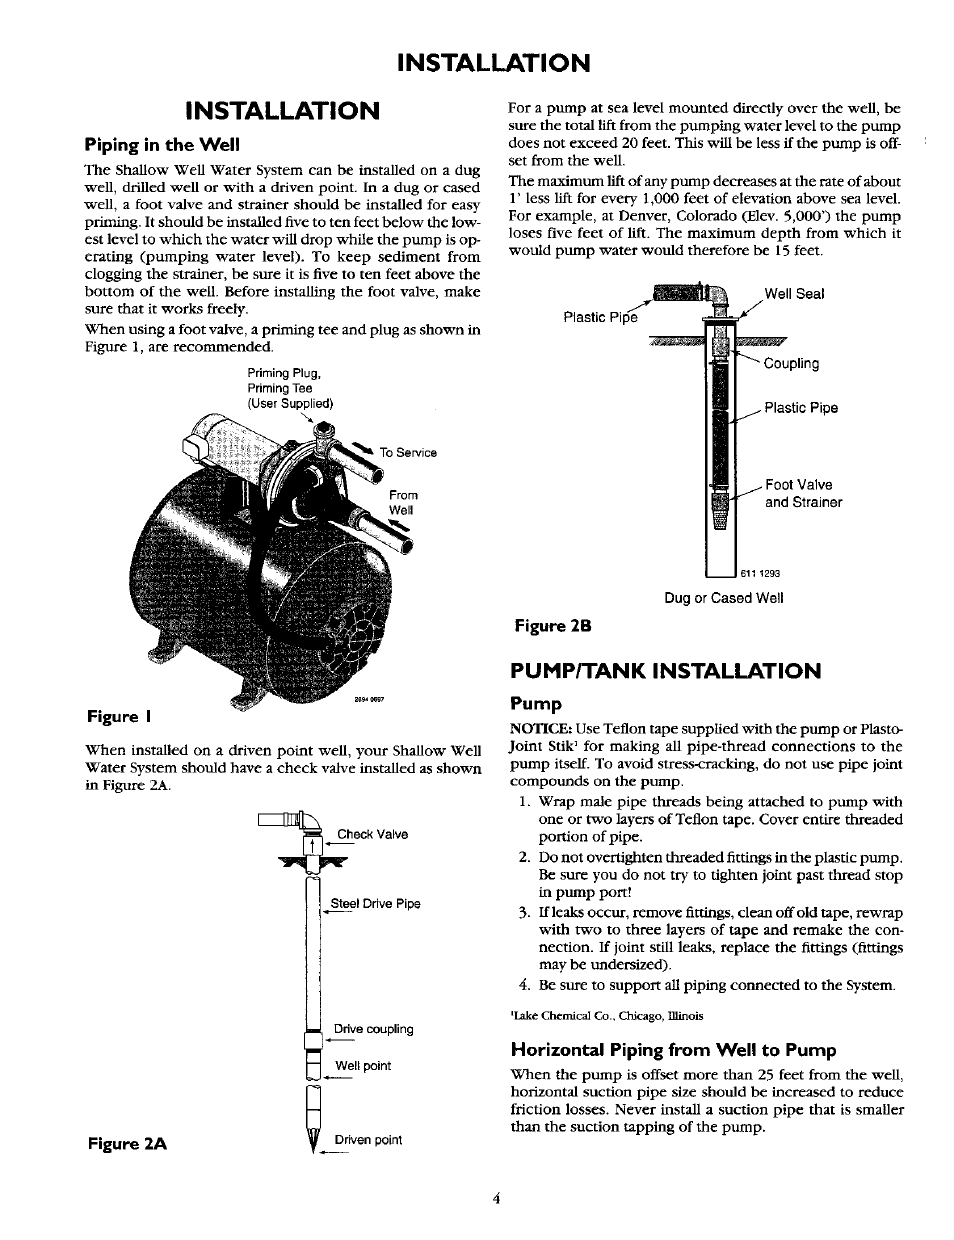 Craftsman Jet Pump Wiring Diagram Diagrams Data Base Honda Gx390 Electric Start Moreover Jeep Cherokee Fuel Installation Piping In The Well Sears 390 2521 User Manual At